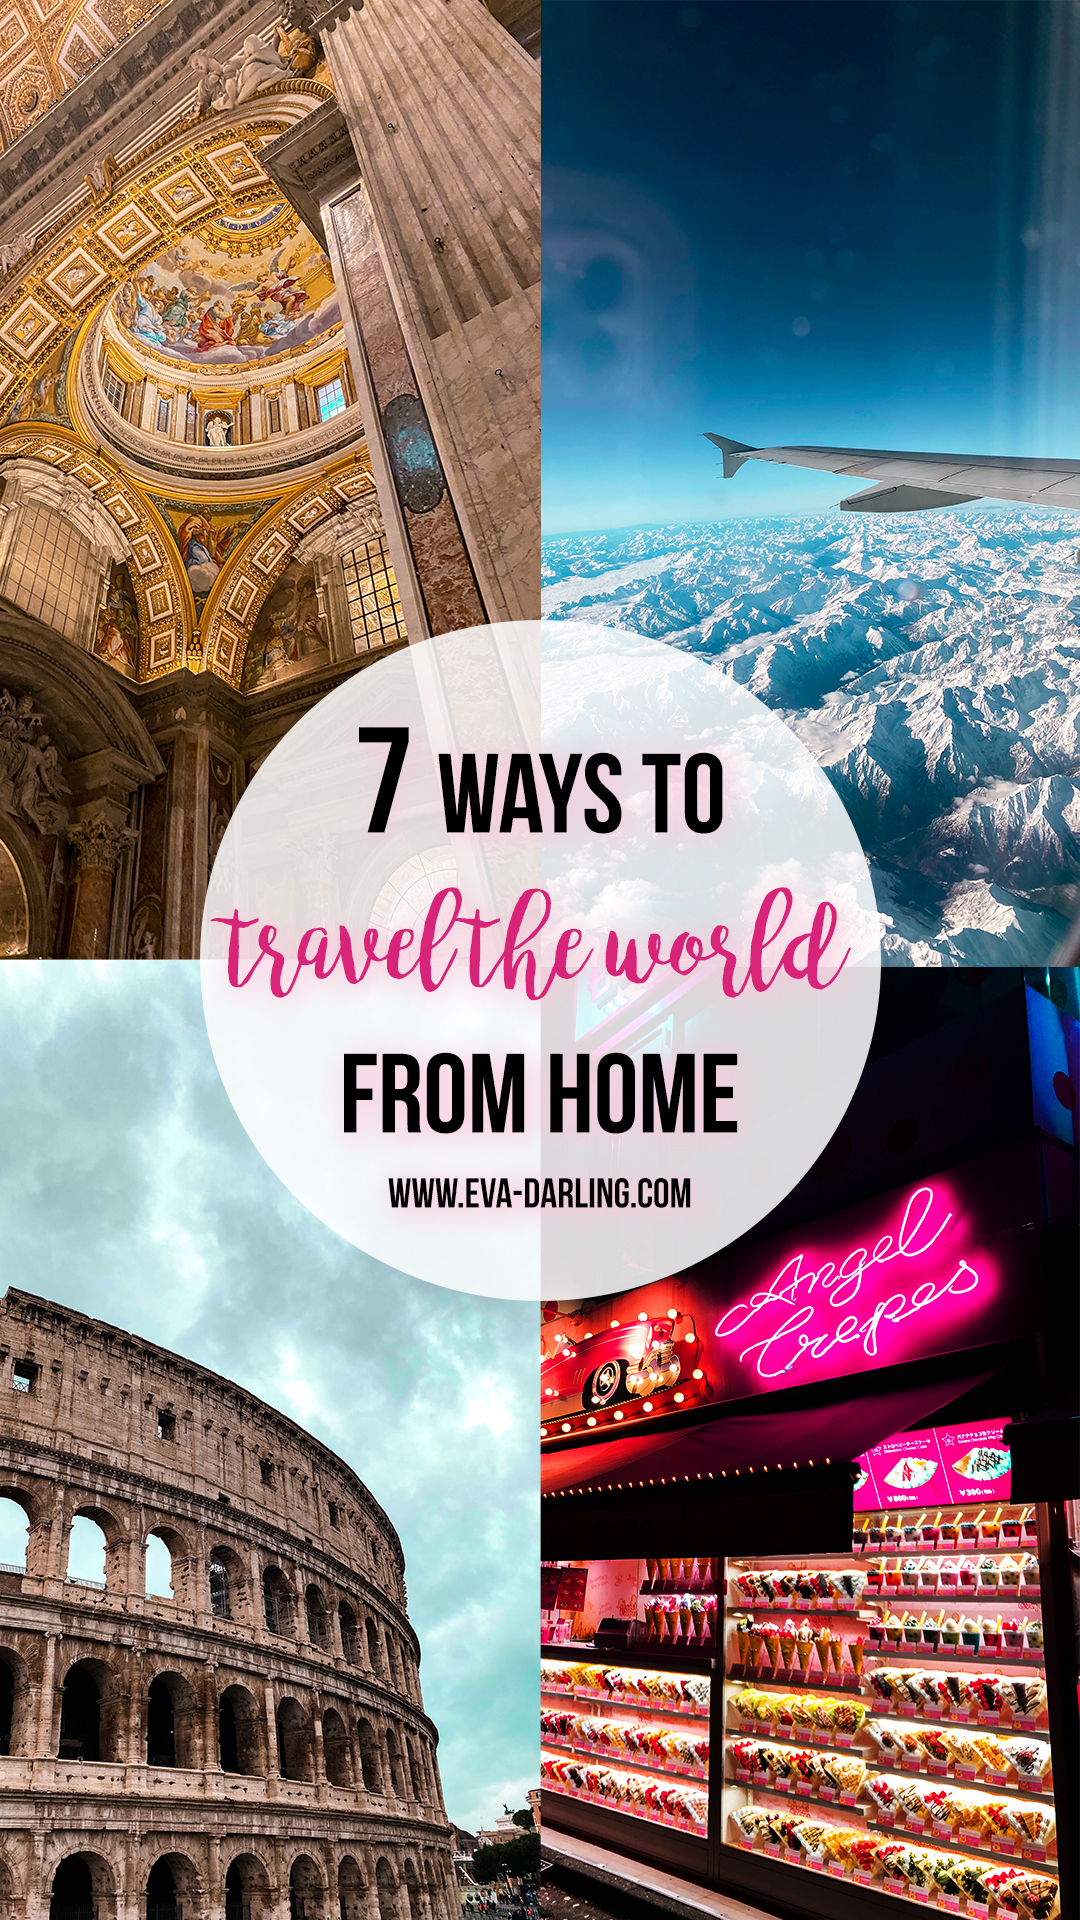 how to virtually travel from home online tour travel guide vatican city st peters basilica rome italy af 6 flight air france swiss alps rome colosseum angel crepes takeshits street harajuku shibuya tokyo japan